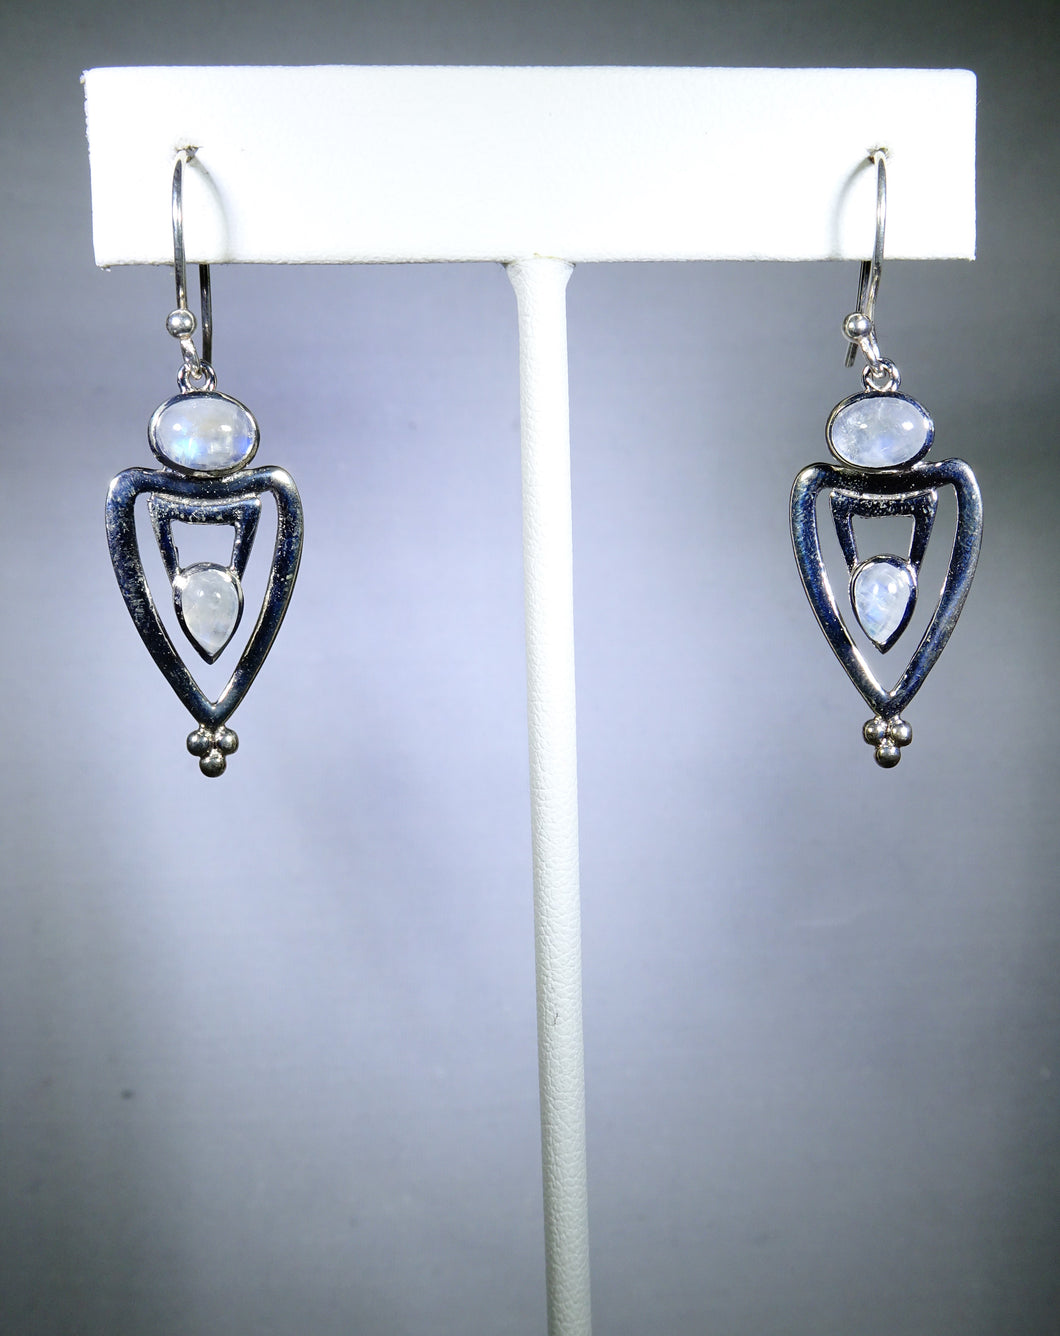 Sterling silver earring, moonstone triangular design